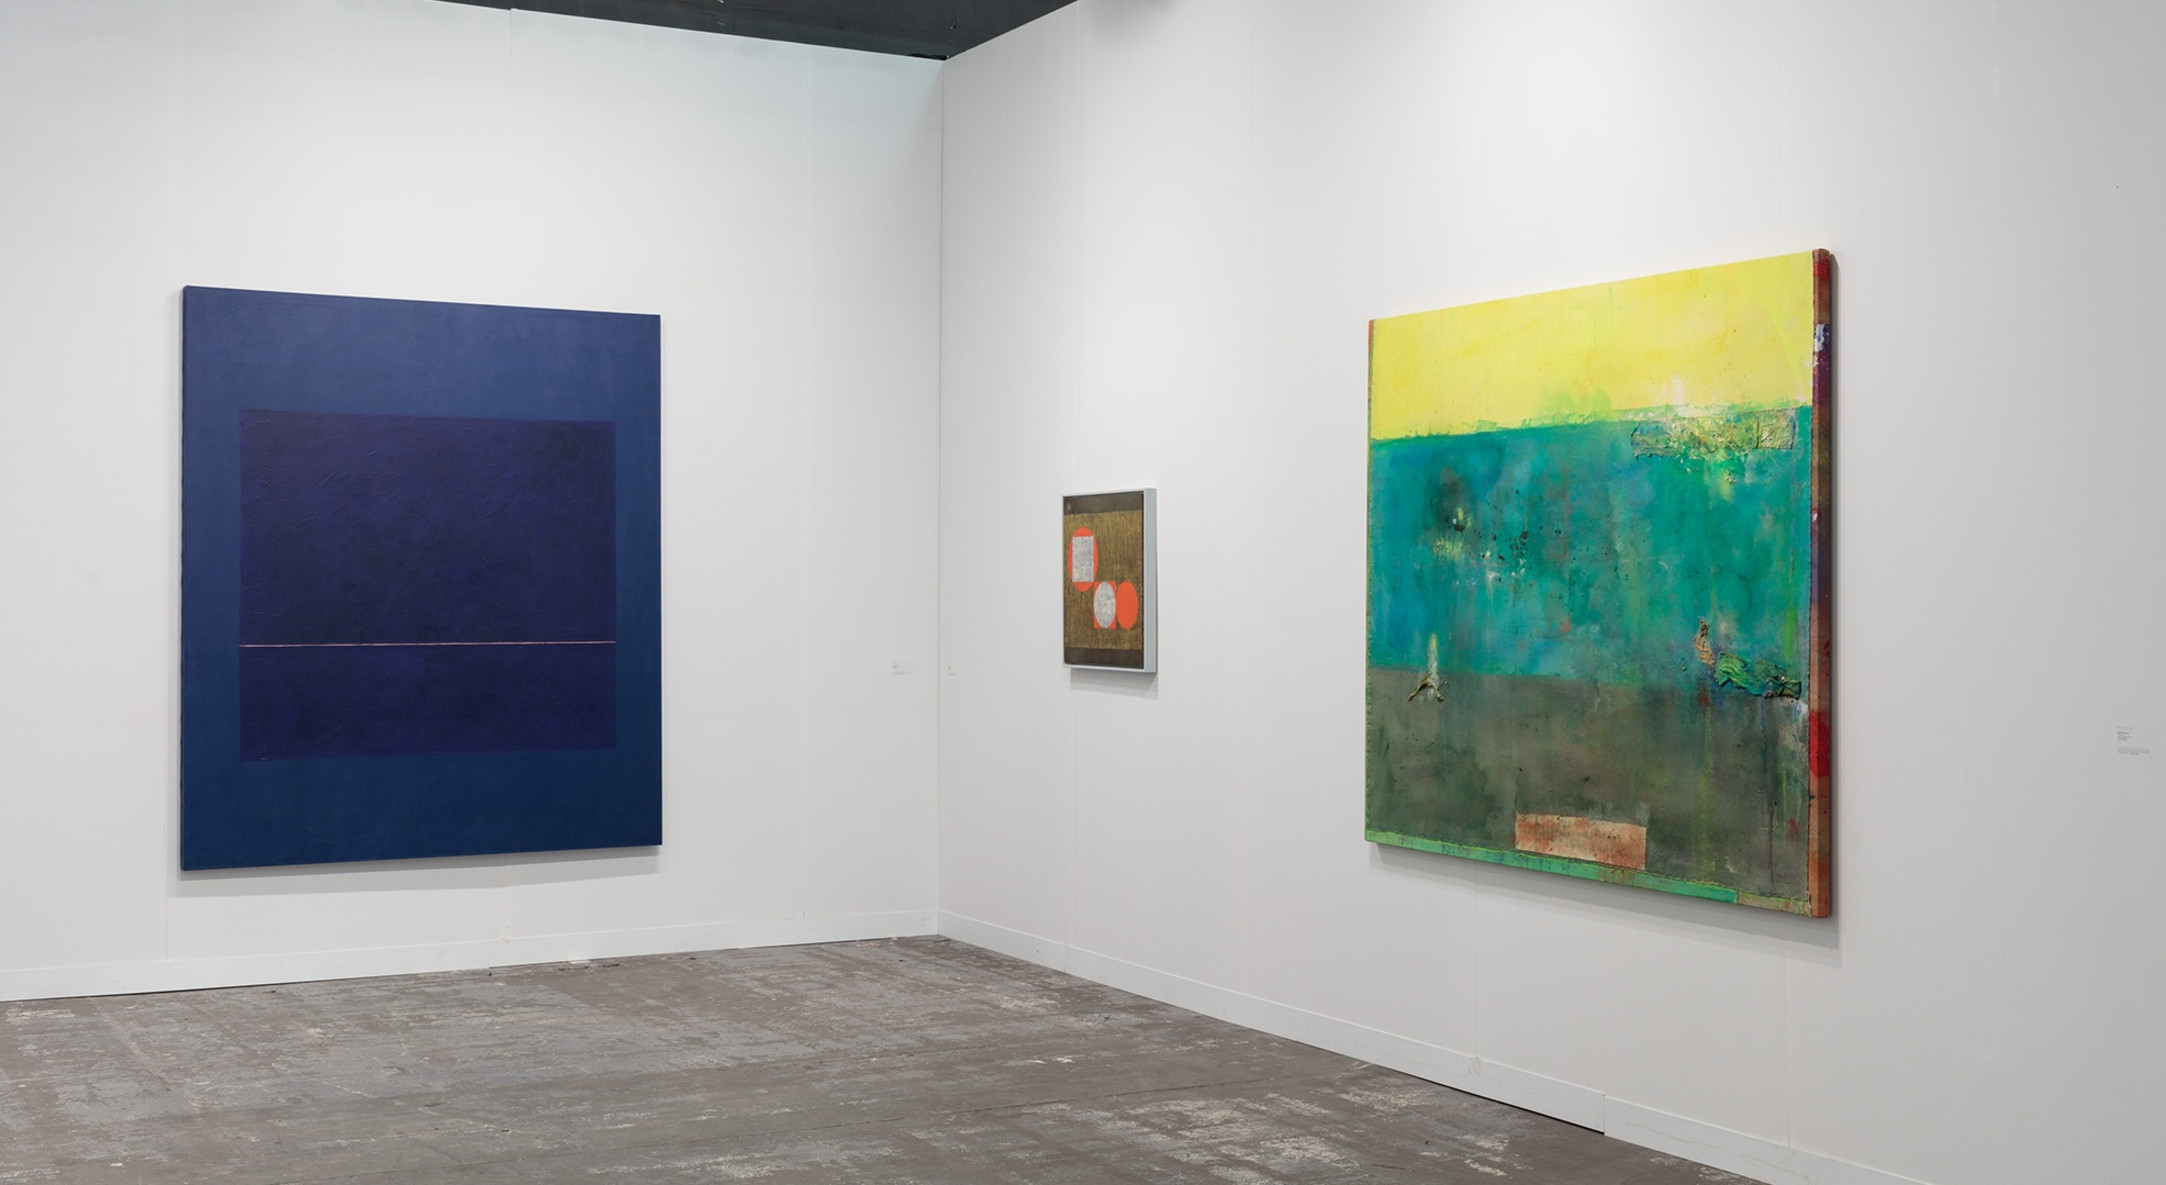 Installation view of Hales Gallery booth at The Armory Show 2018